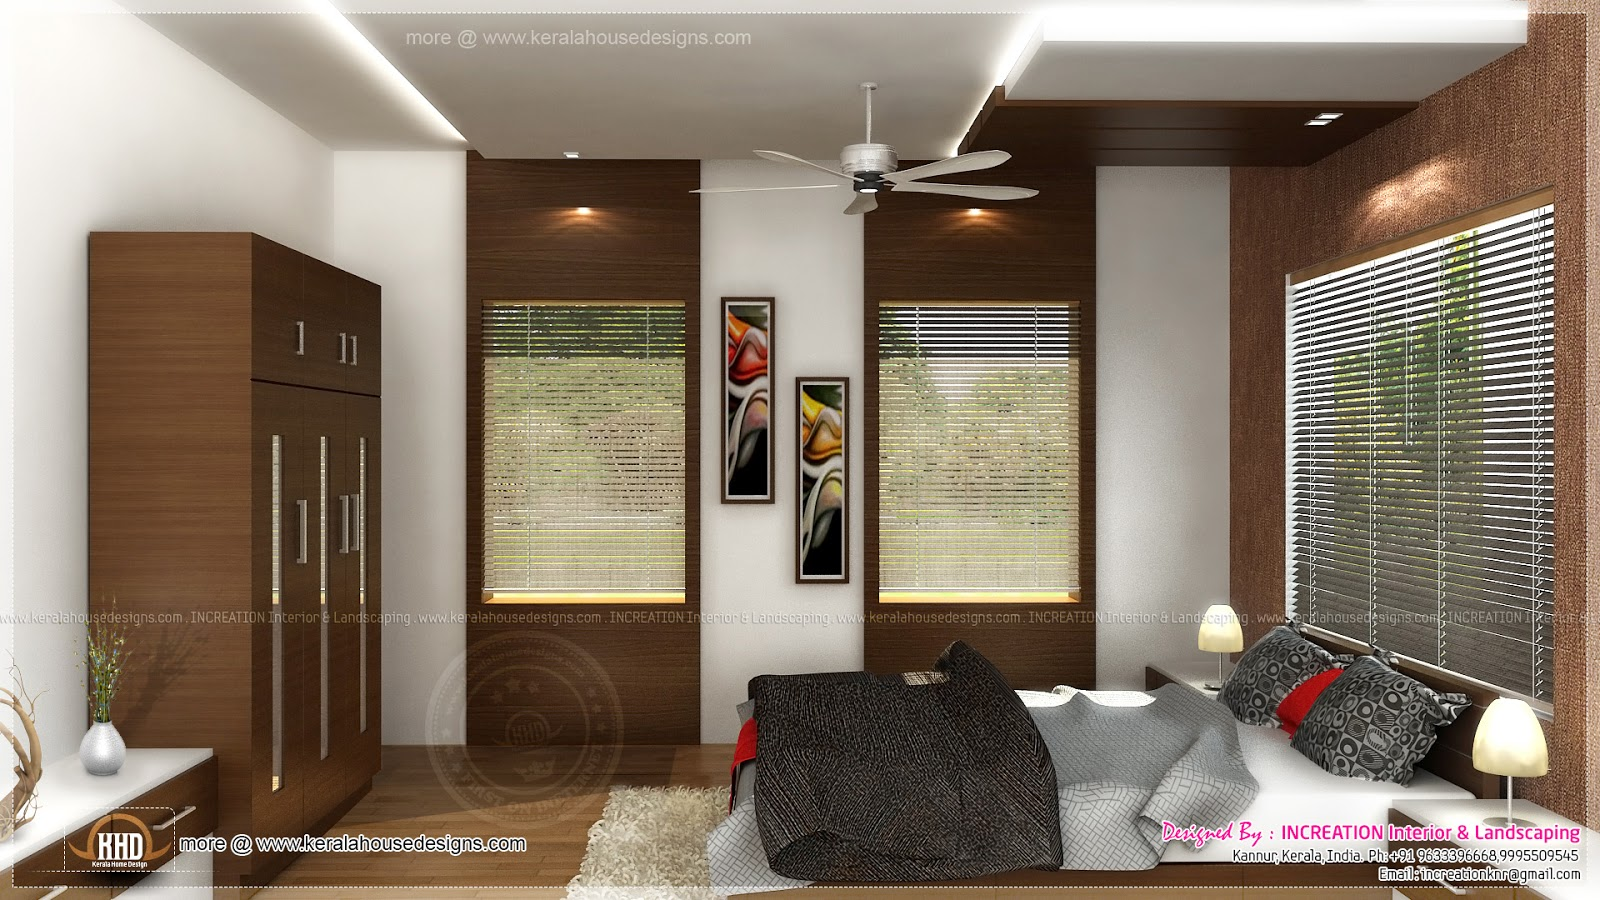 Interior designs from kannur kerala home kerala plans for 2 bhk interior decoration pictures